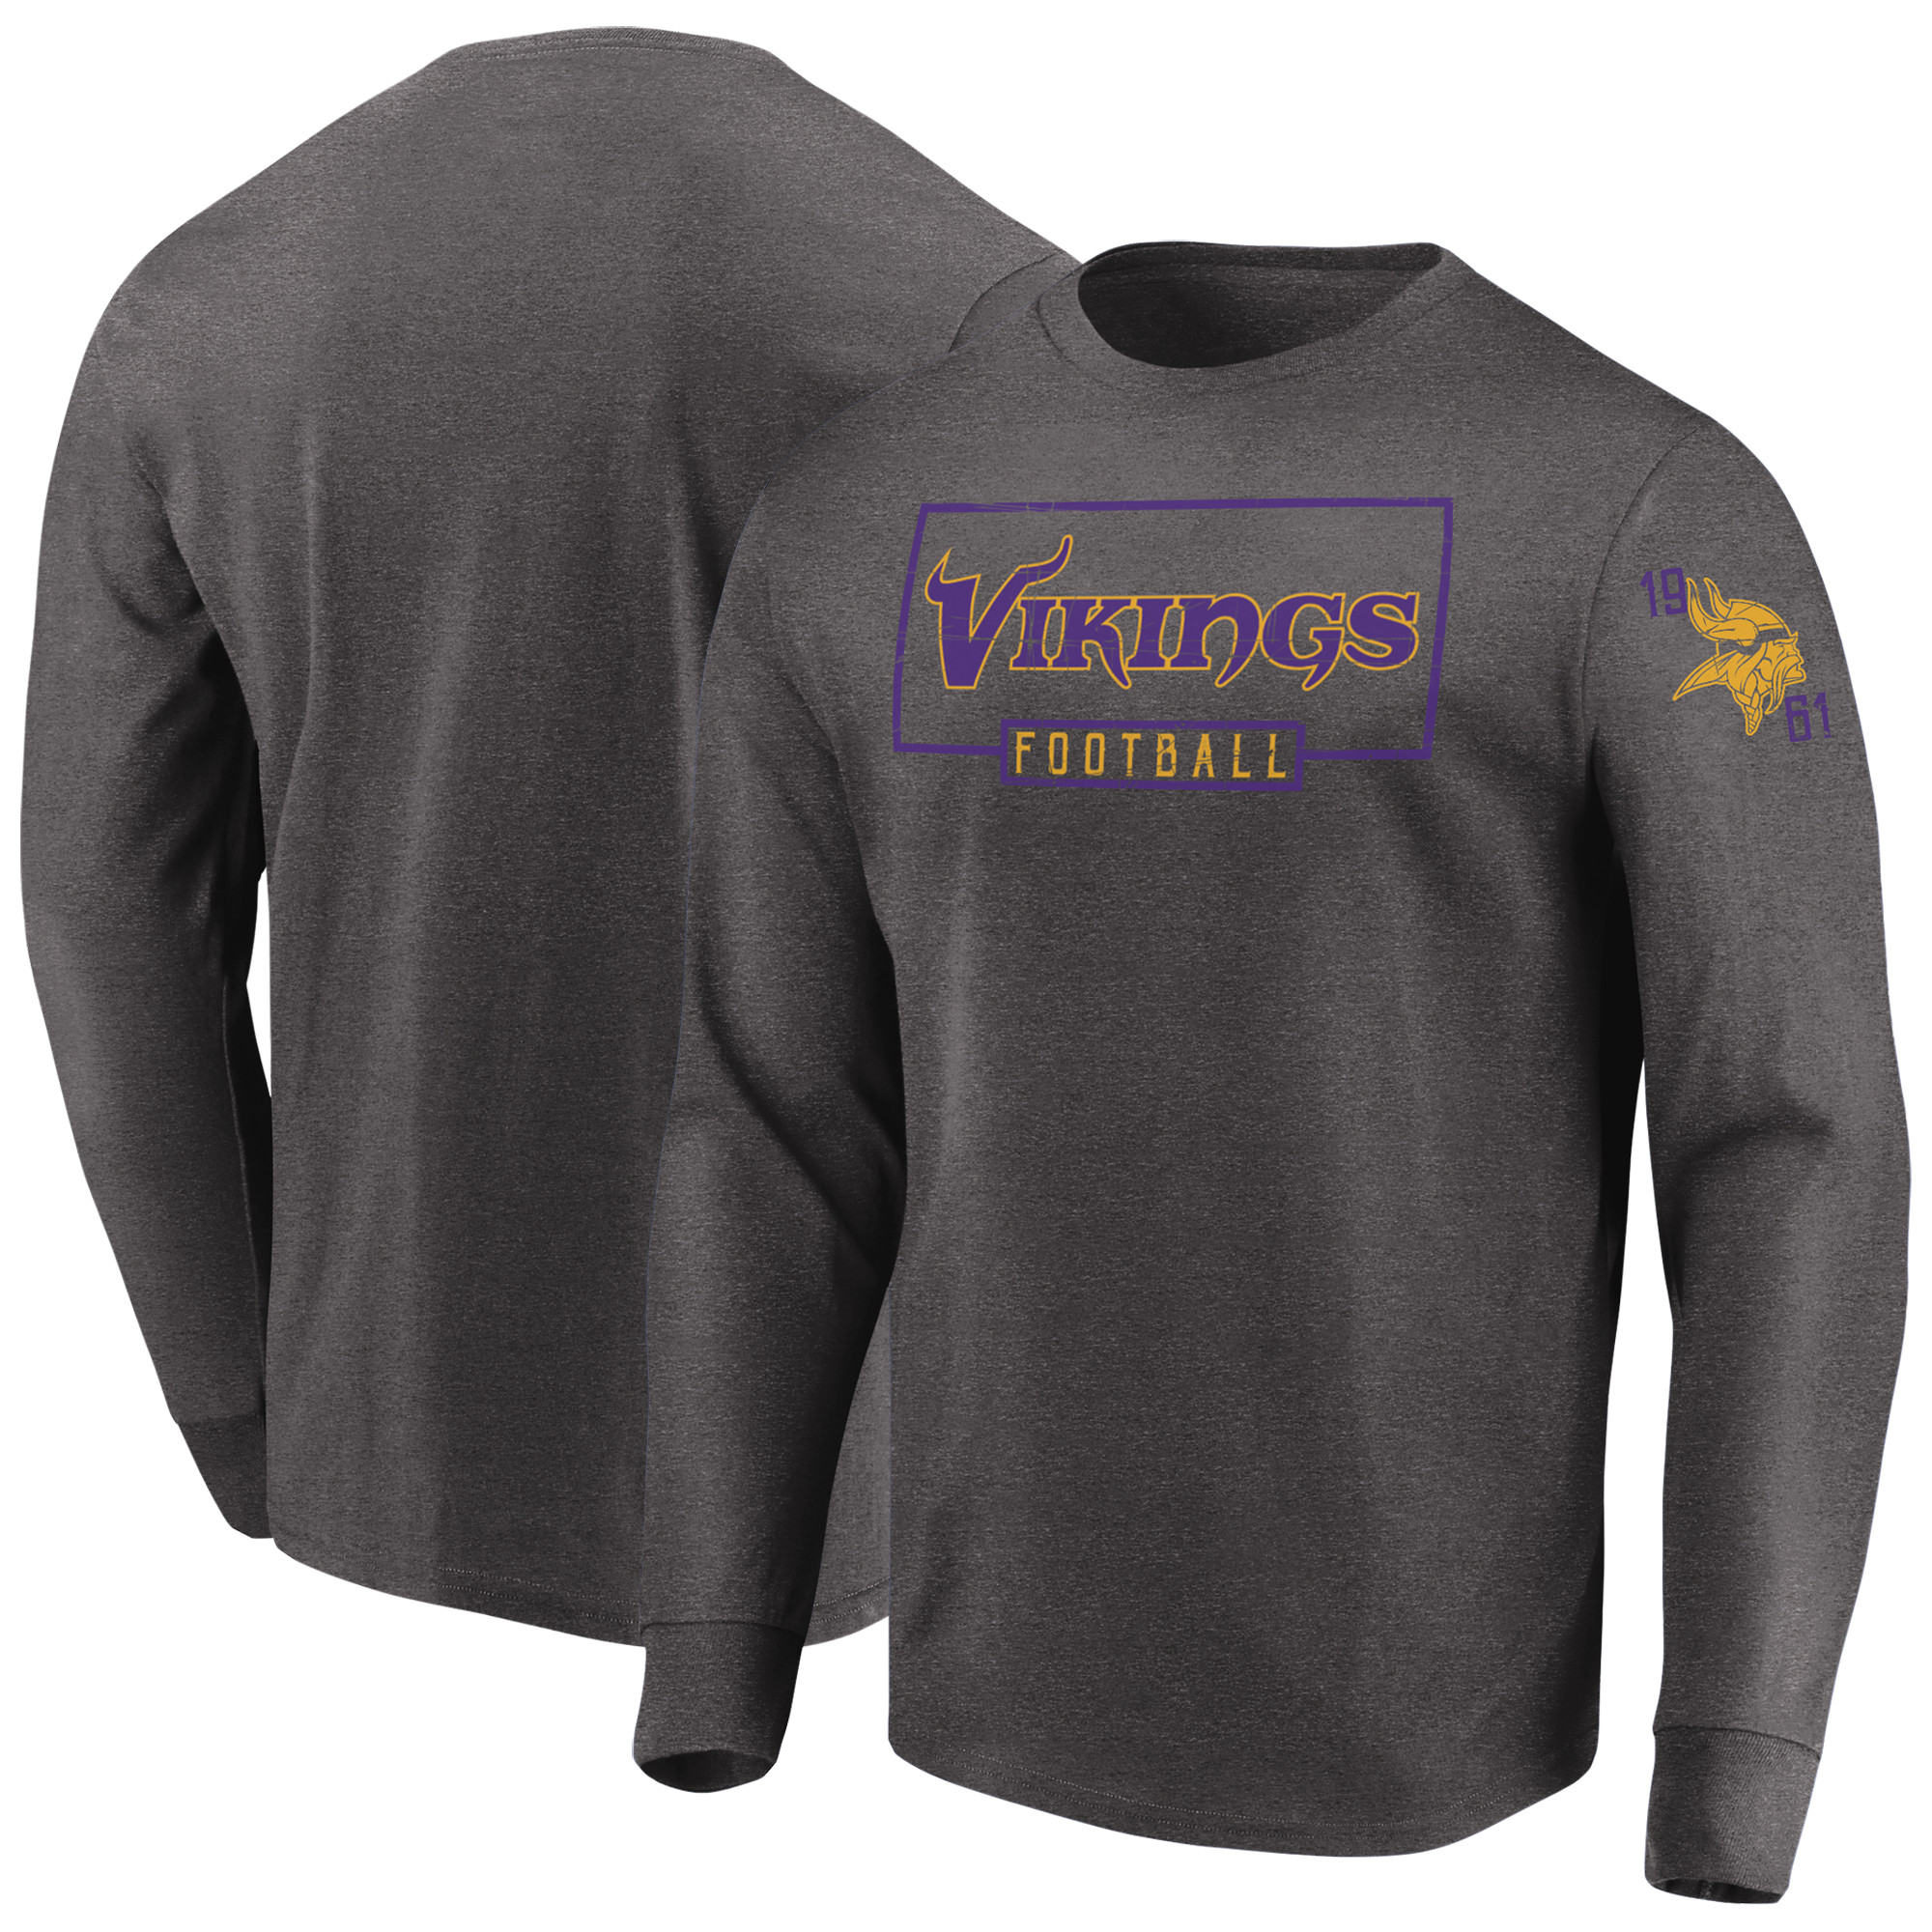 Minnesota Vikings Majestic Kick Return Long Sleeve T-Shirt - Heathered Charcoal